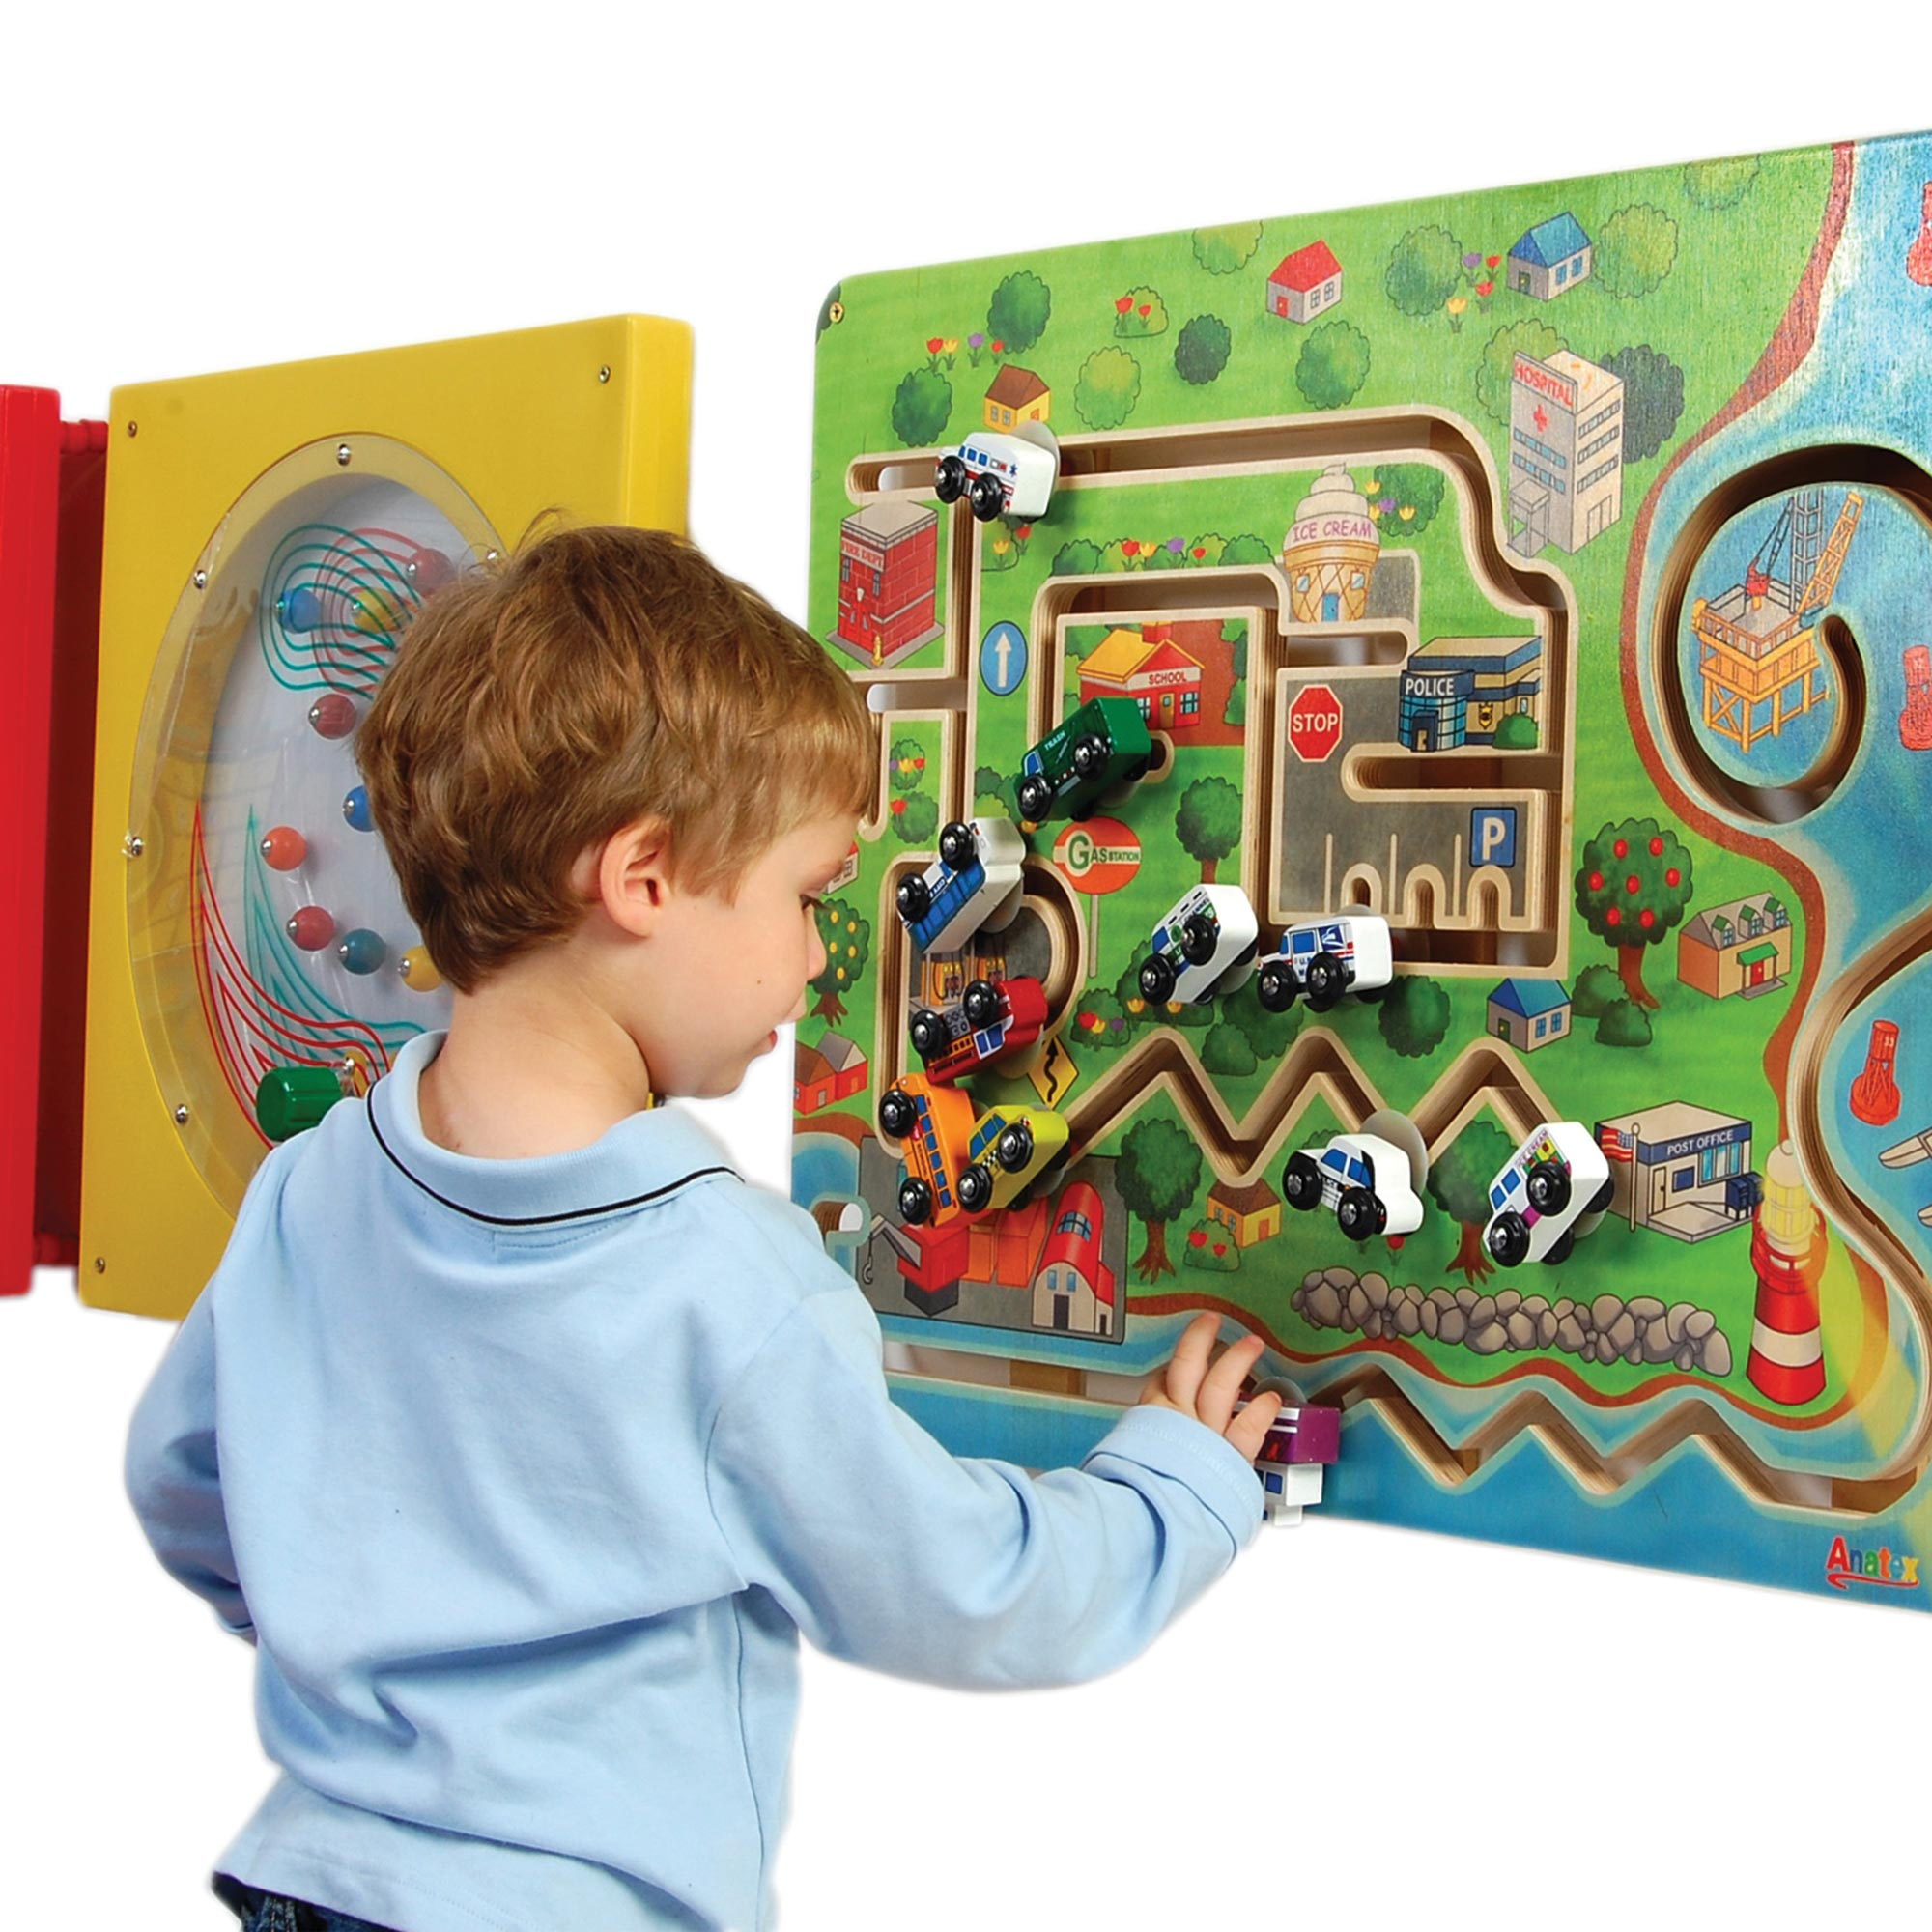 WALL MOUNTED PLAY SYSTEMS